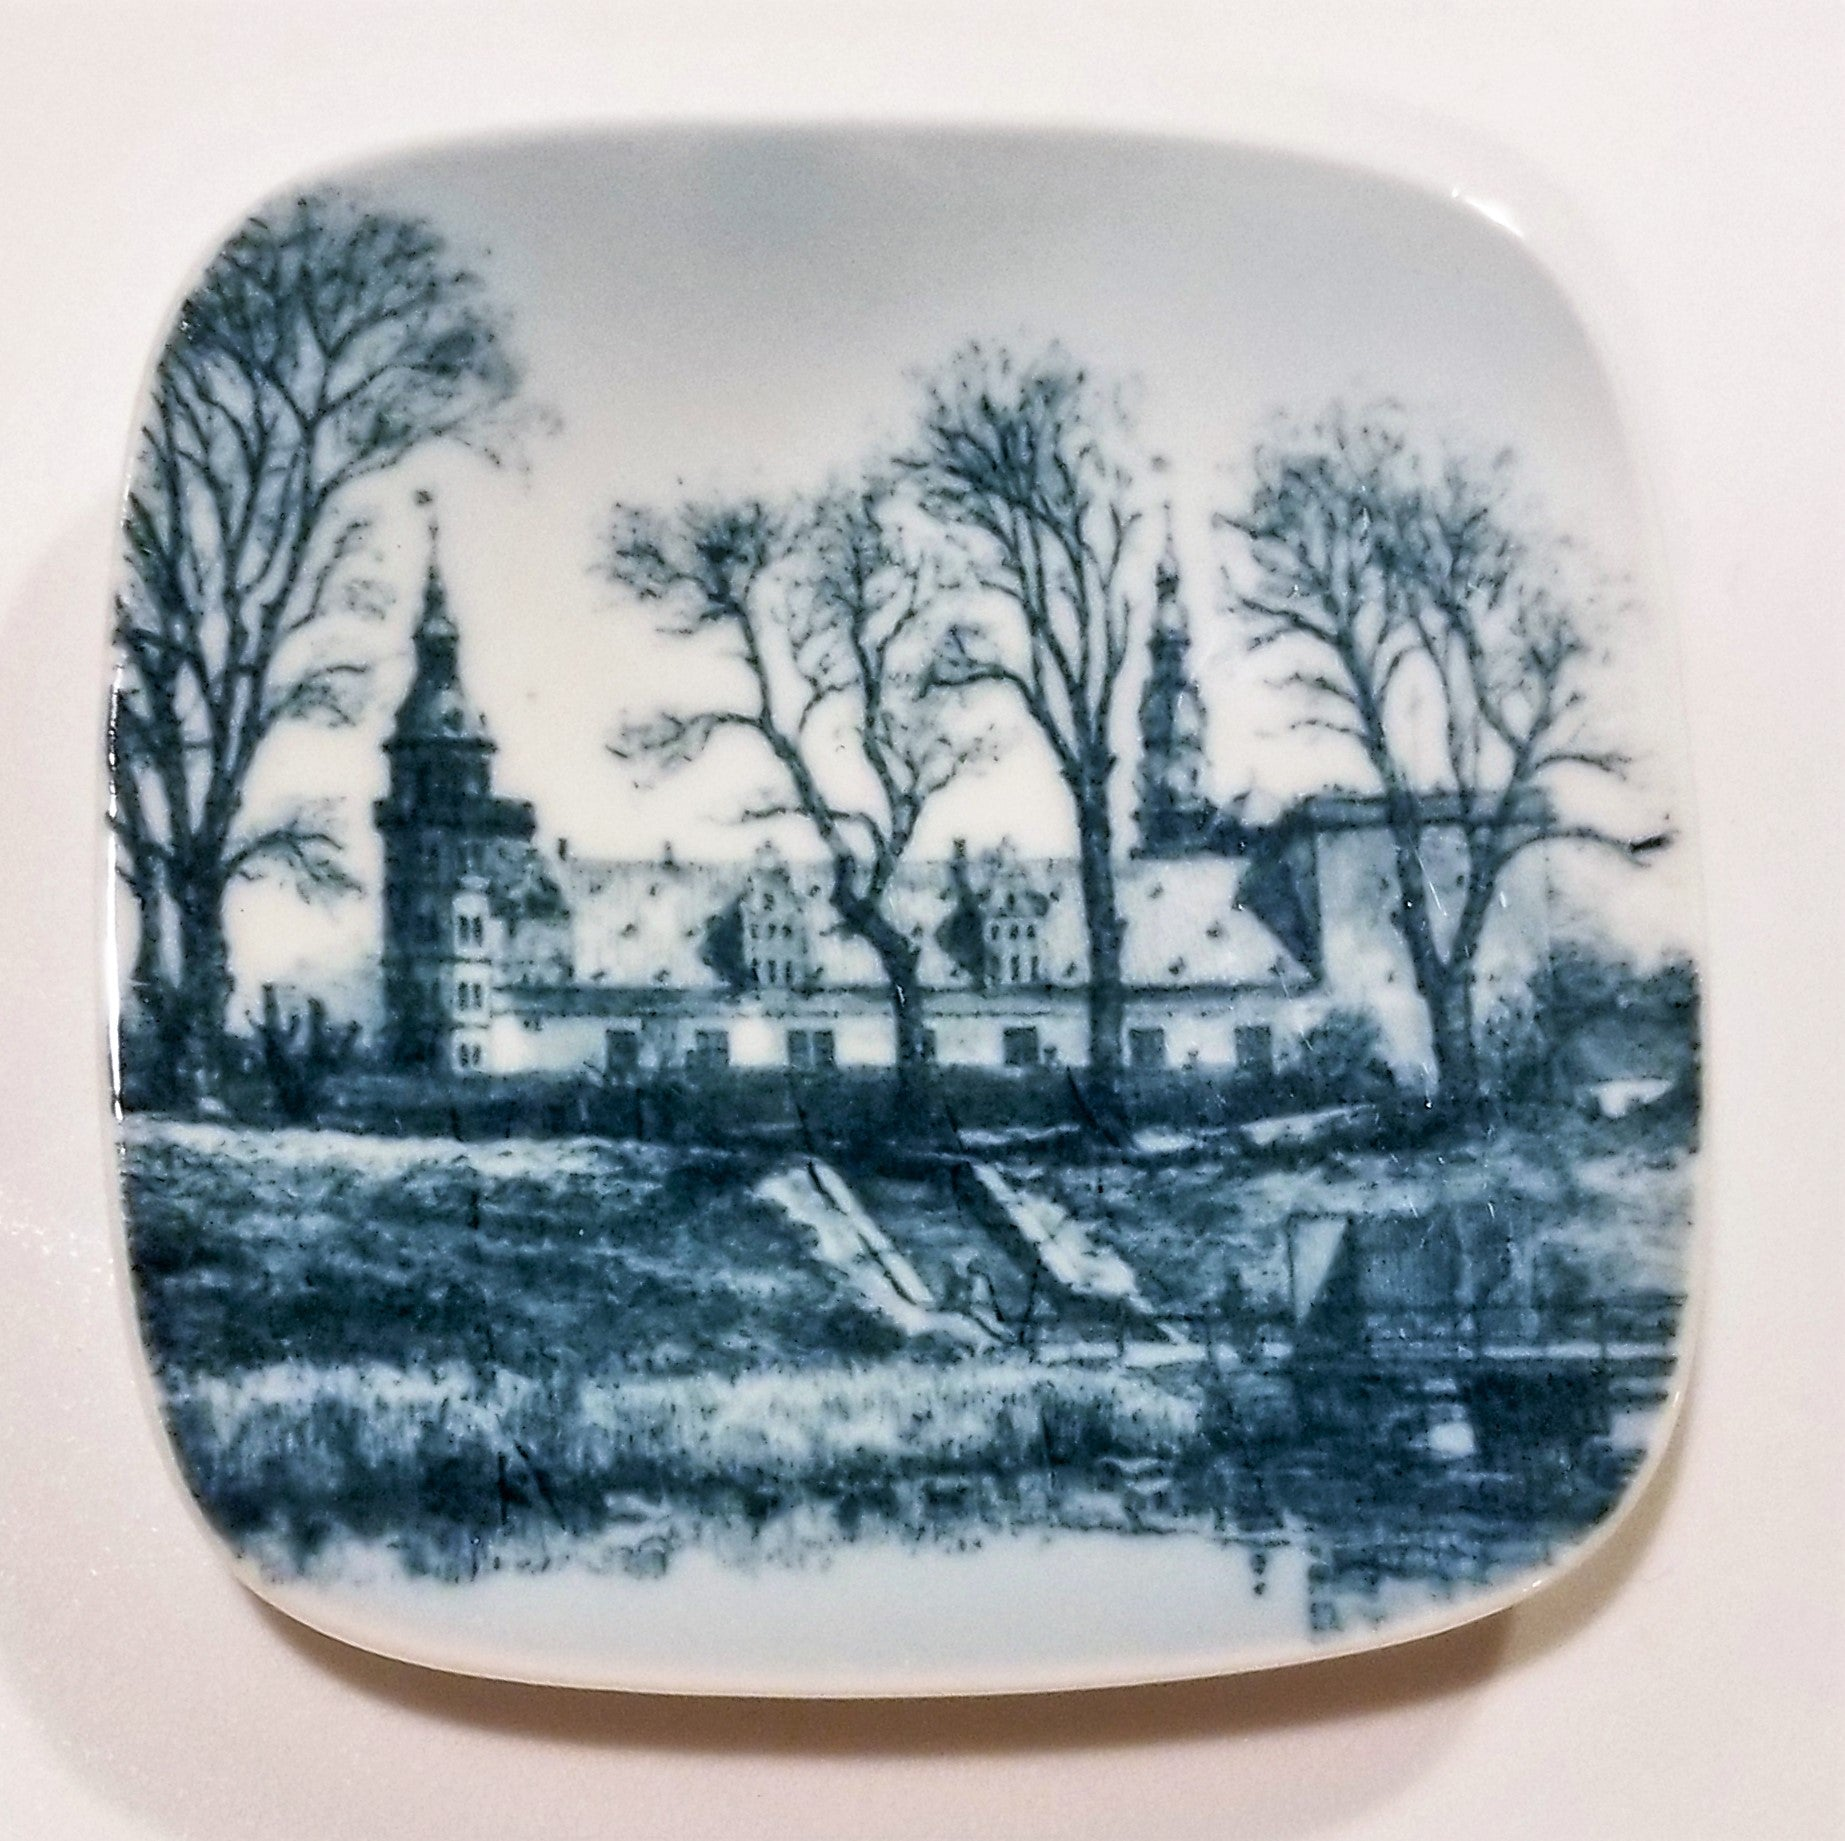 Vintage Bing and Grondahl Porcelain Plaquette Gefon Fountain Giftware 9702/708